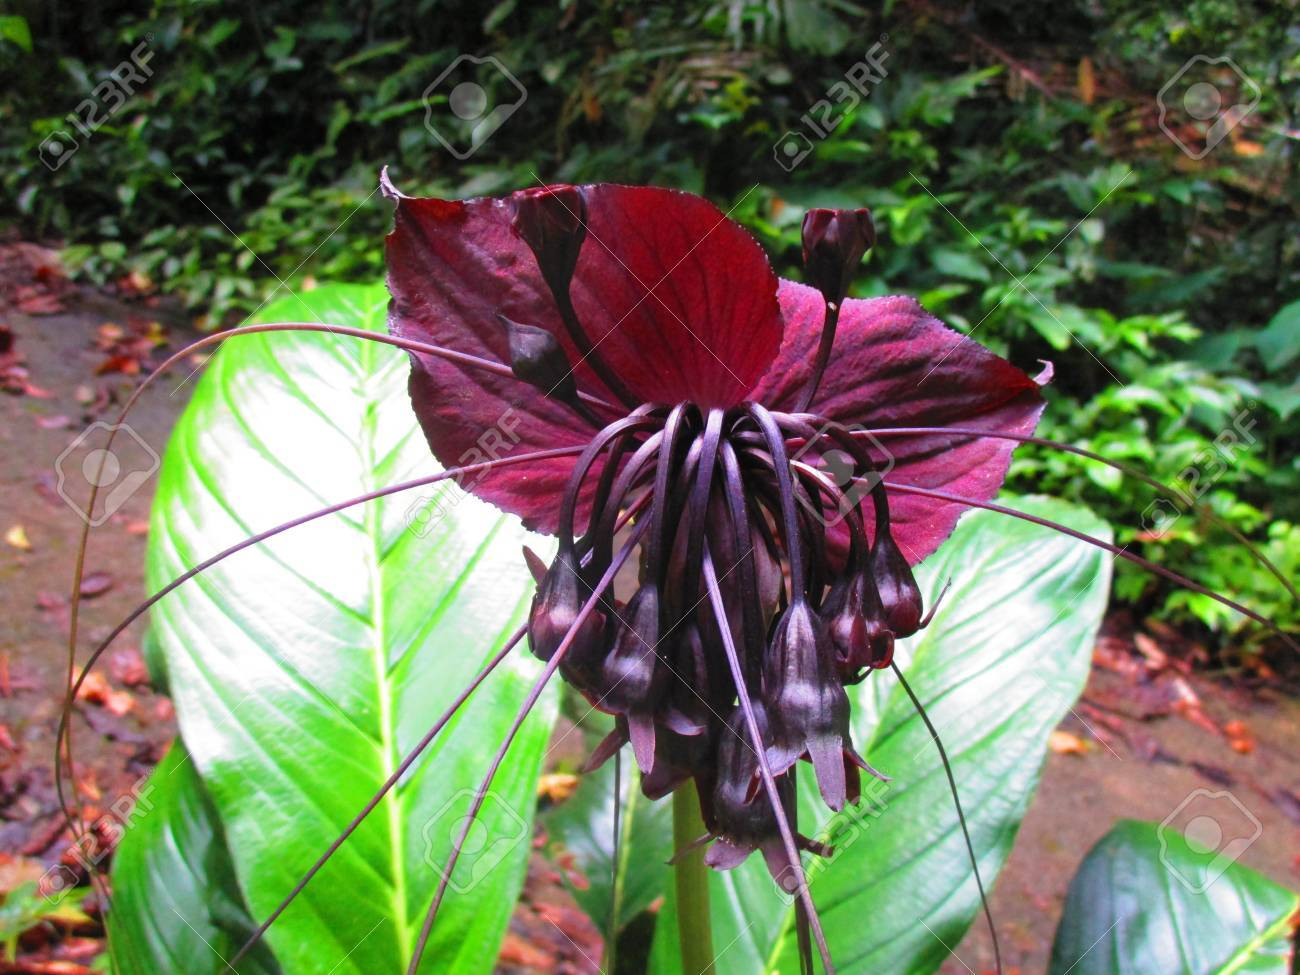 Black Bat Flowers Scientifically Known As Tacca Chantrieri Is ...